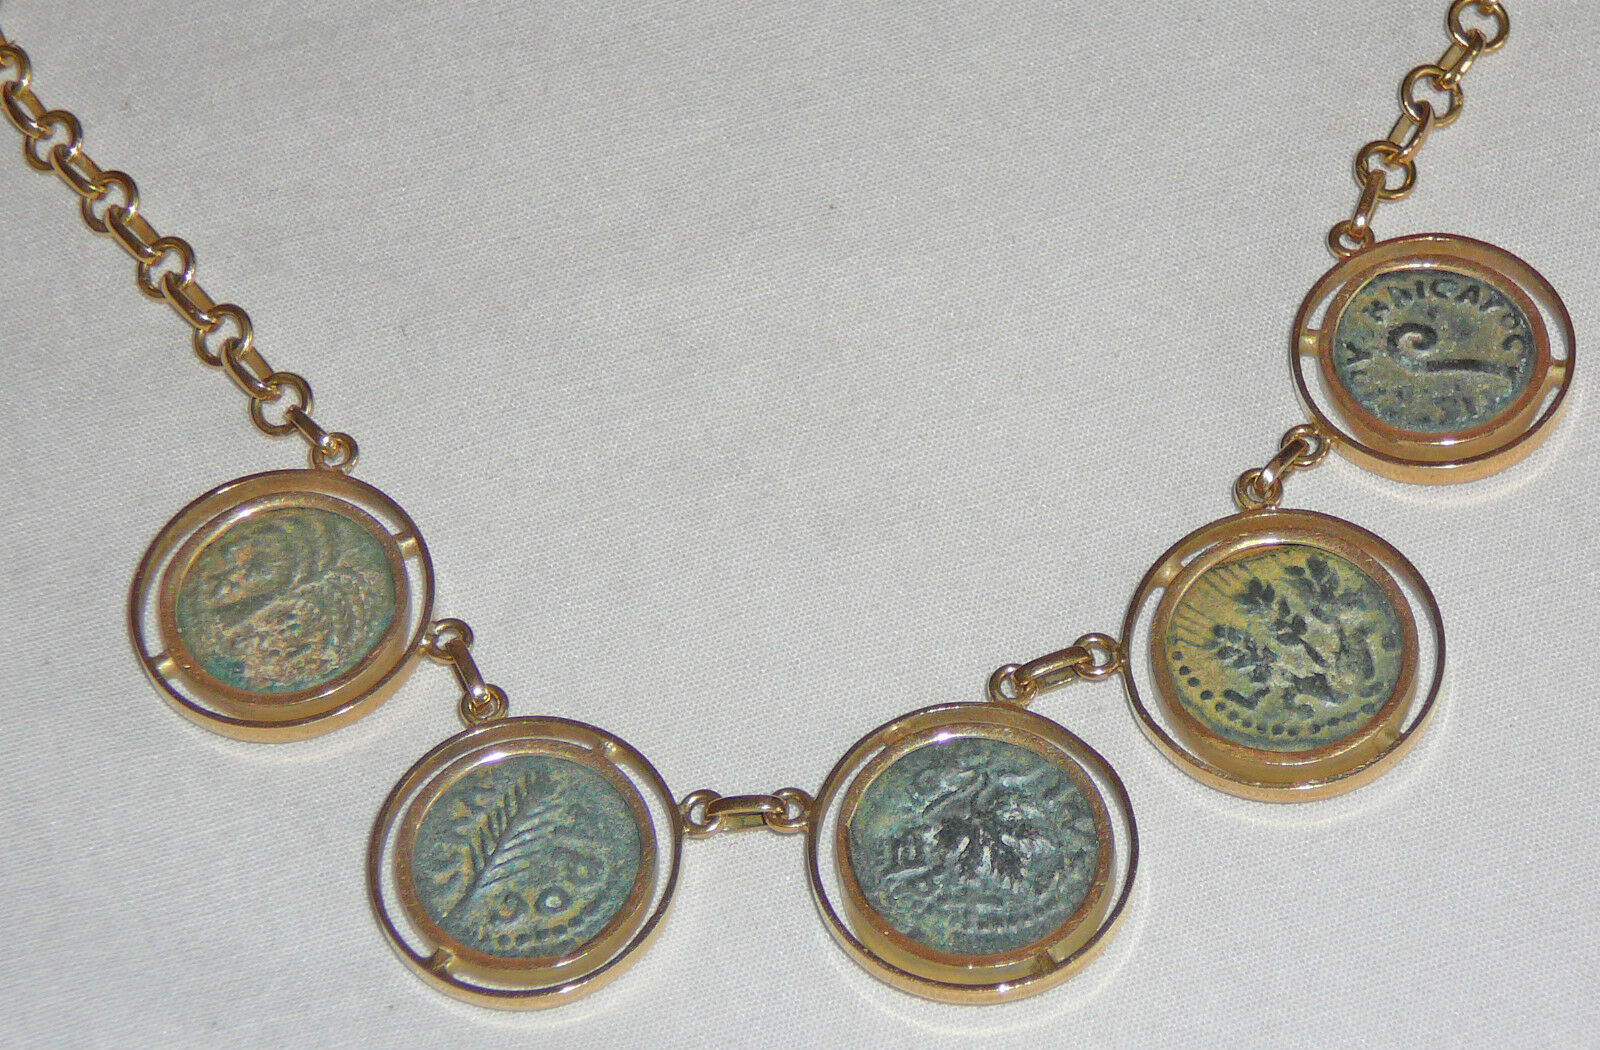 18 Karat gold necklace set with five ancient coins from the Second Temple period